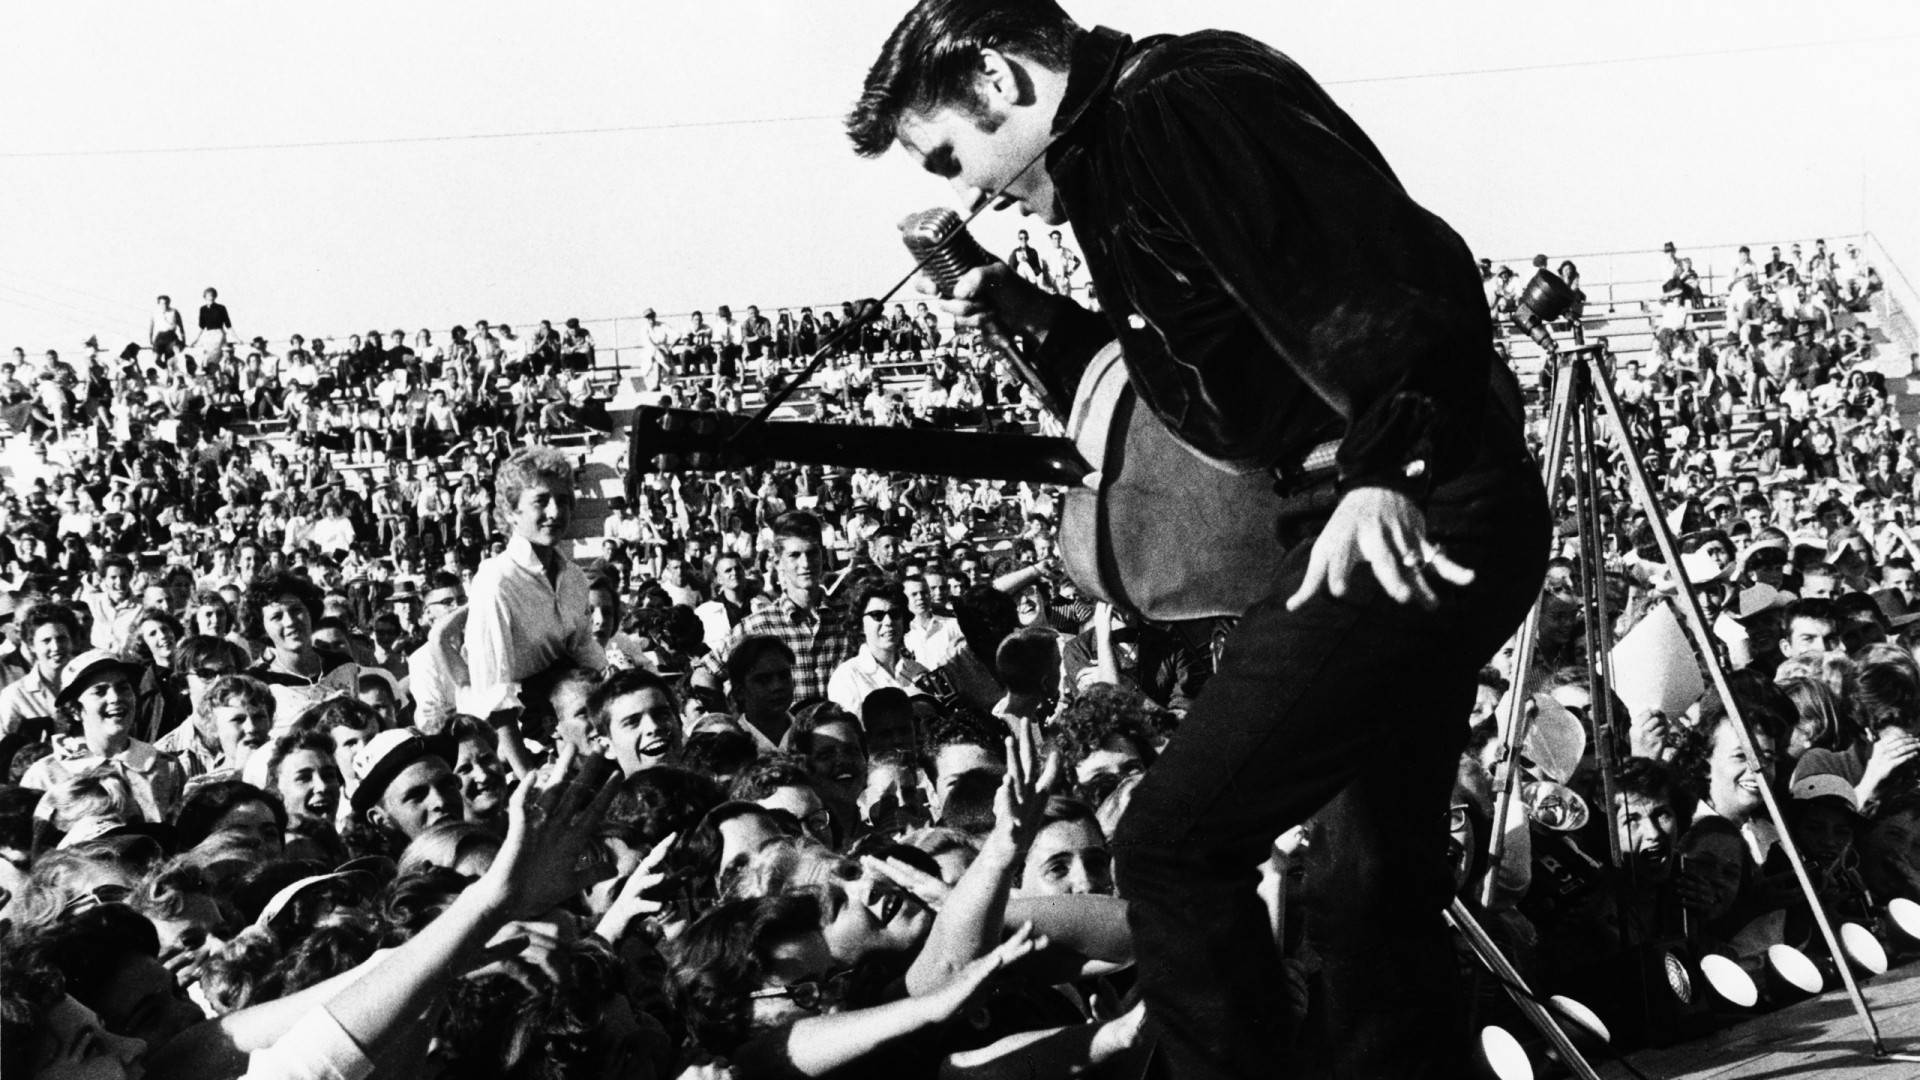 elvis-presley-1920x1080-wallpaper-2166691